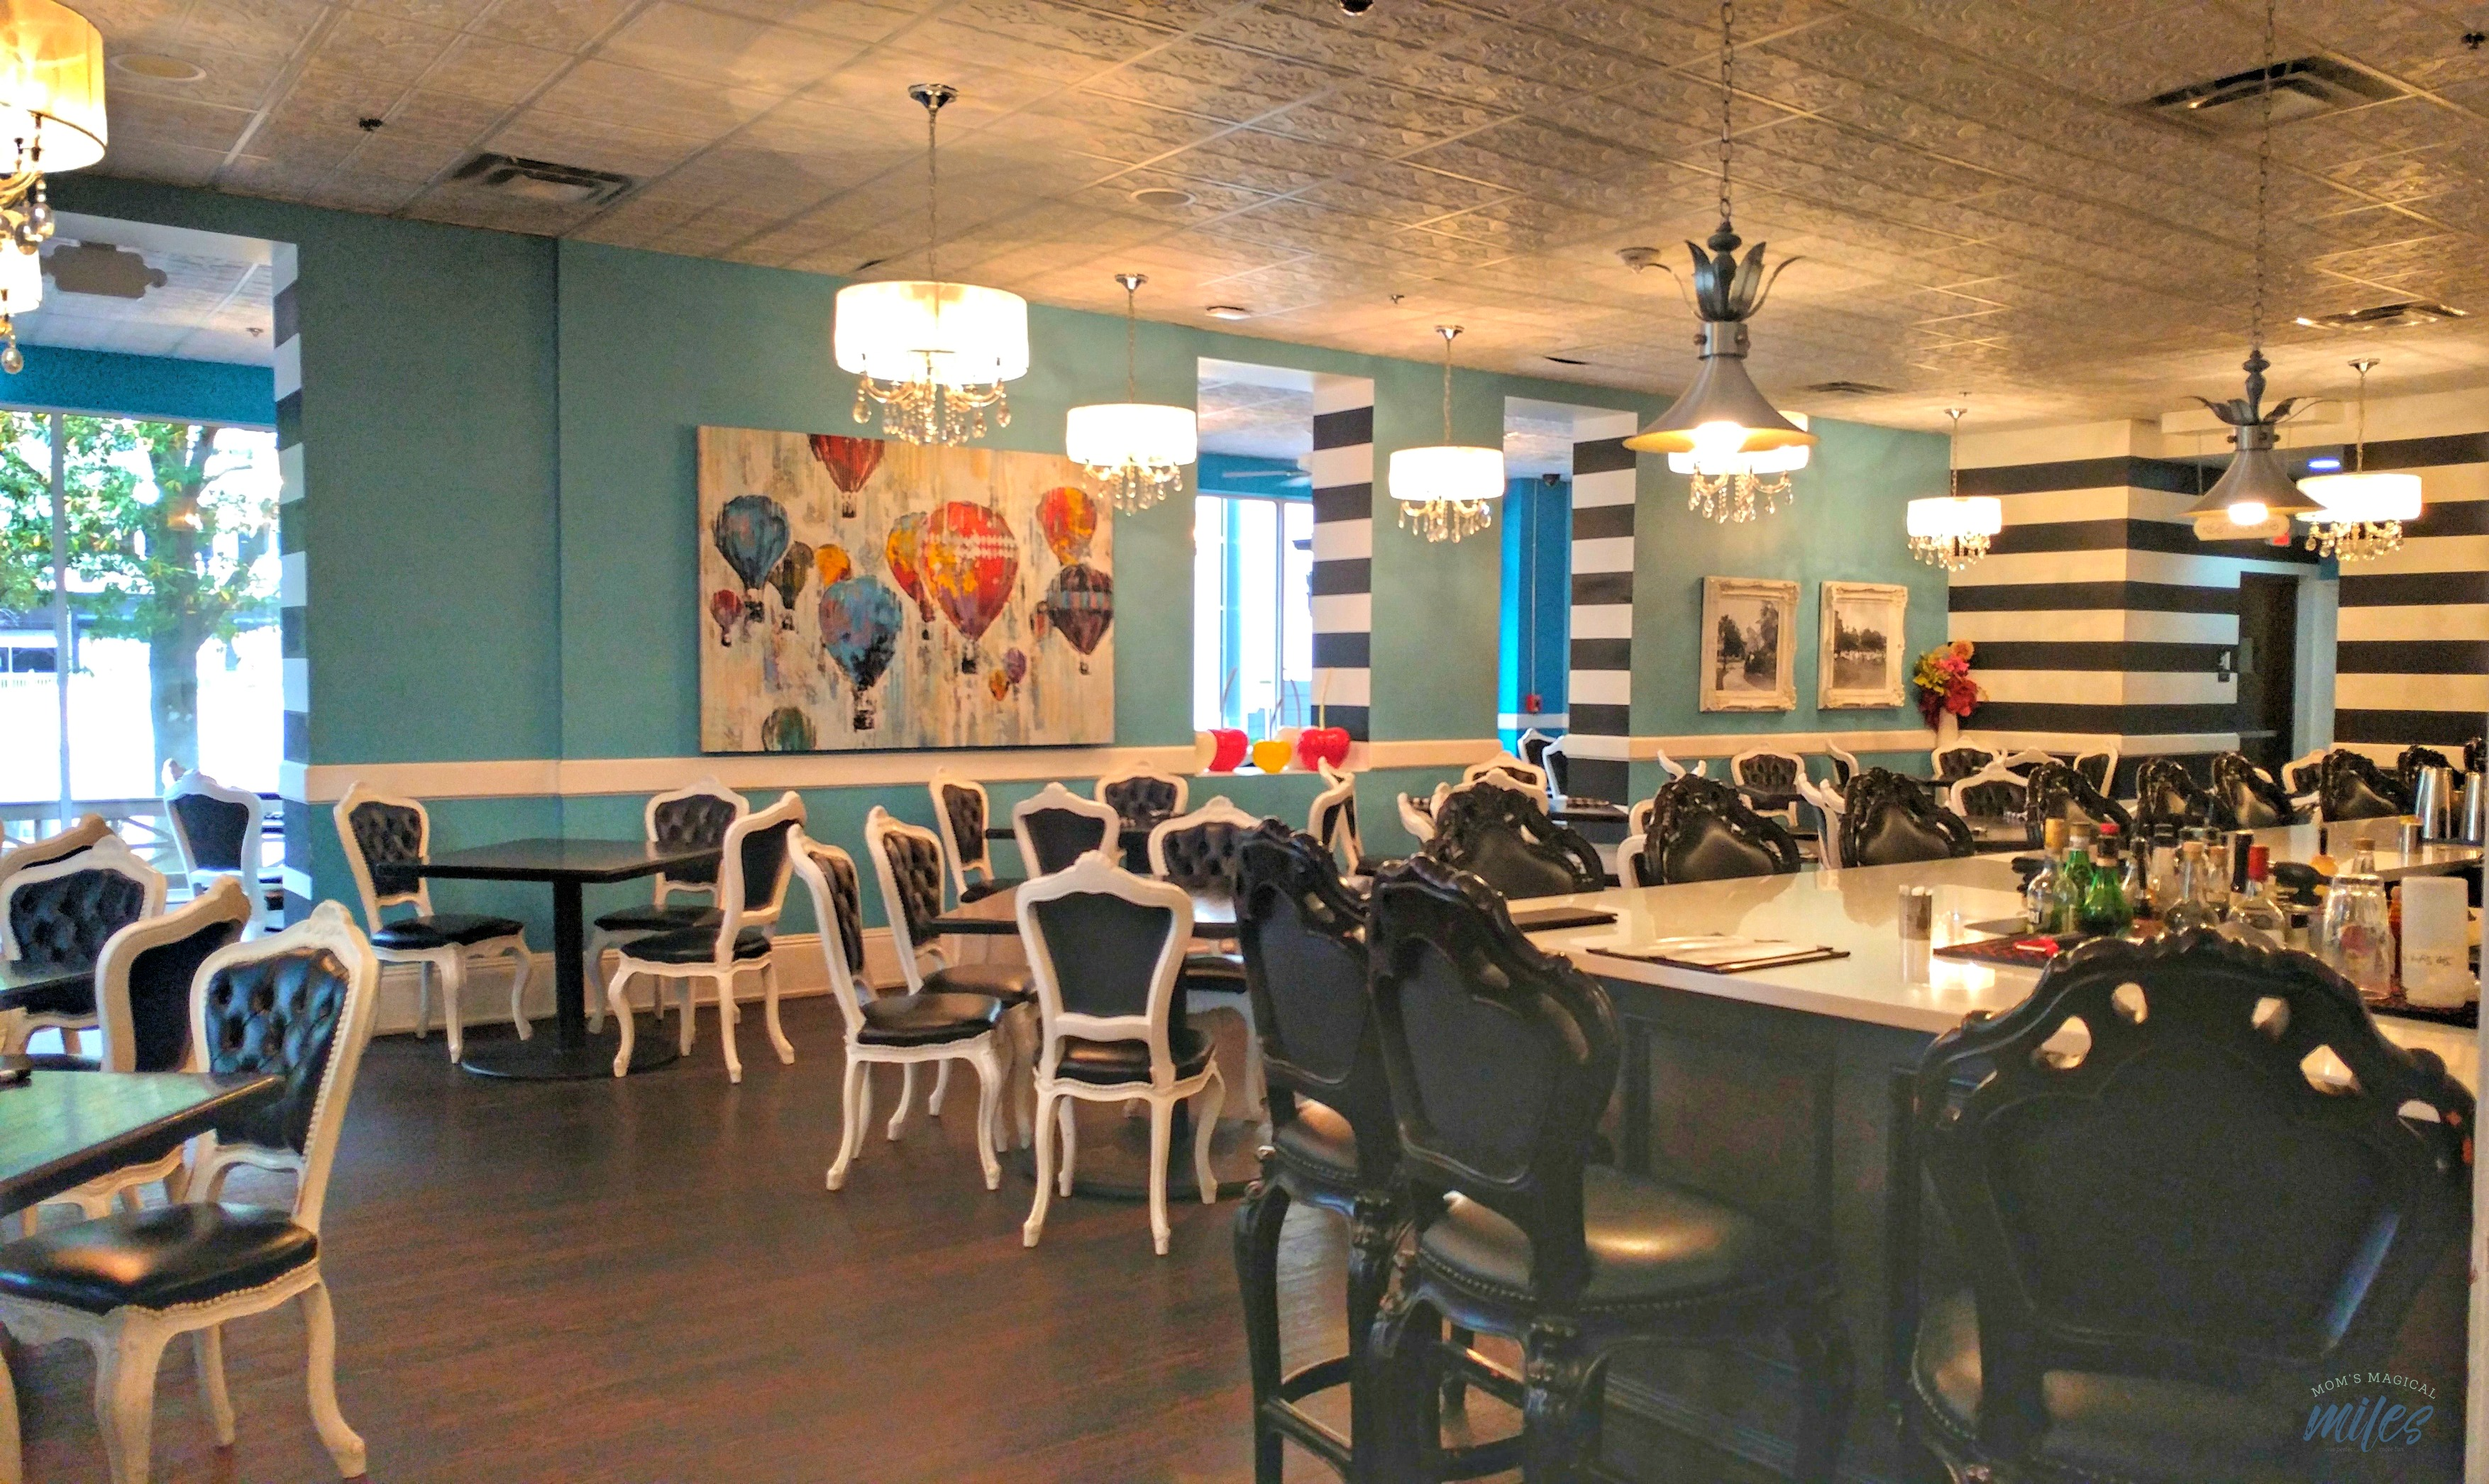 The Candy Apple Cafe inside Sweet Pete's offers brunch, lunch and dinner. Jacksonville, FL